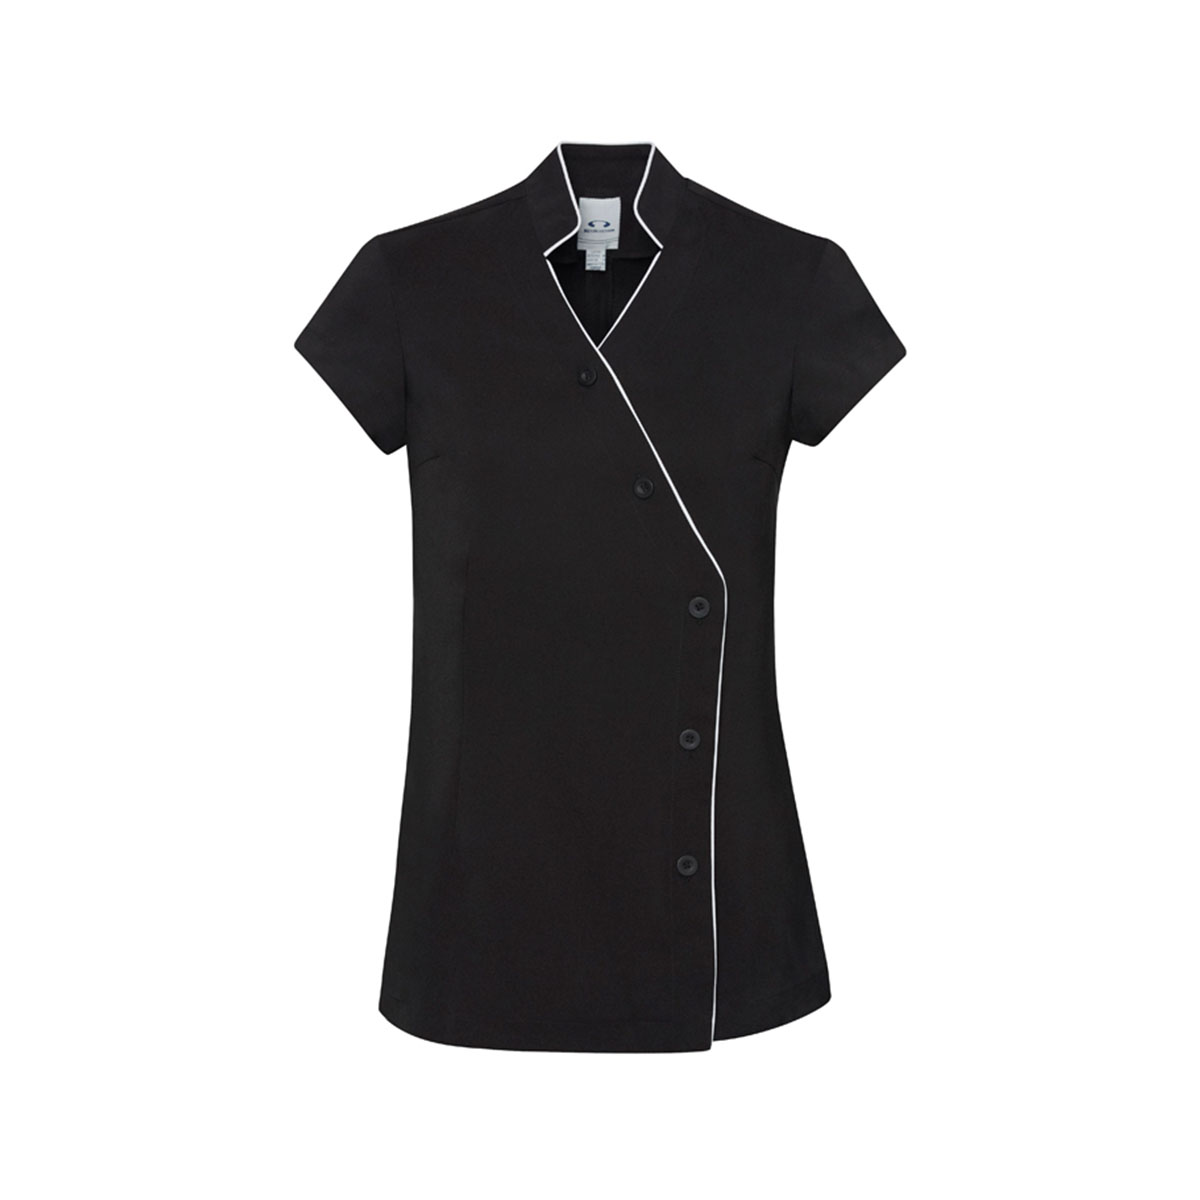 Ladies Zen Crossover Tunic-Black / White